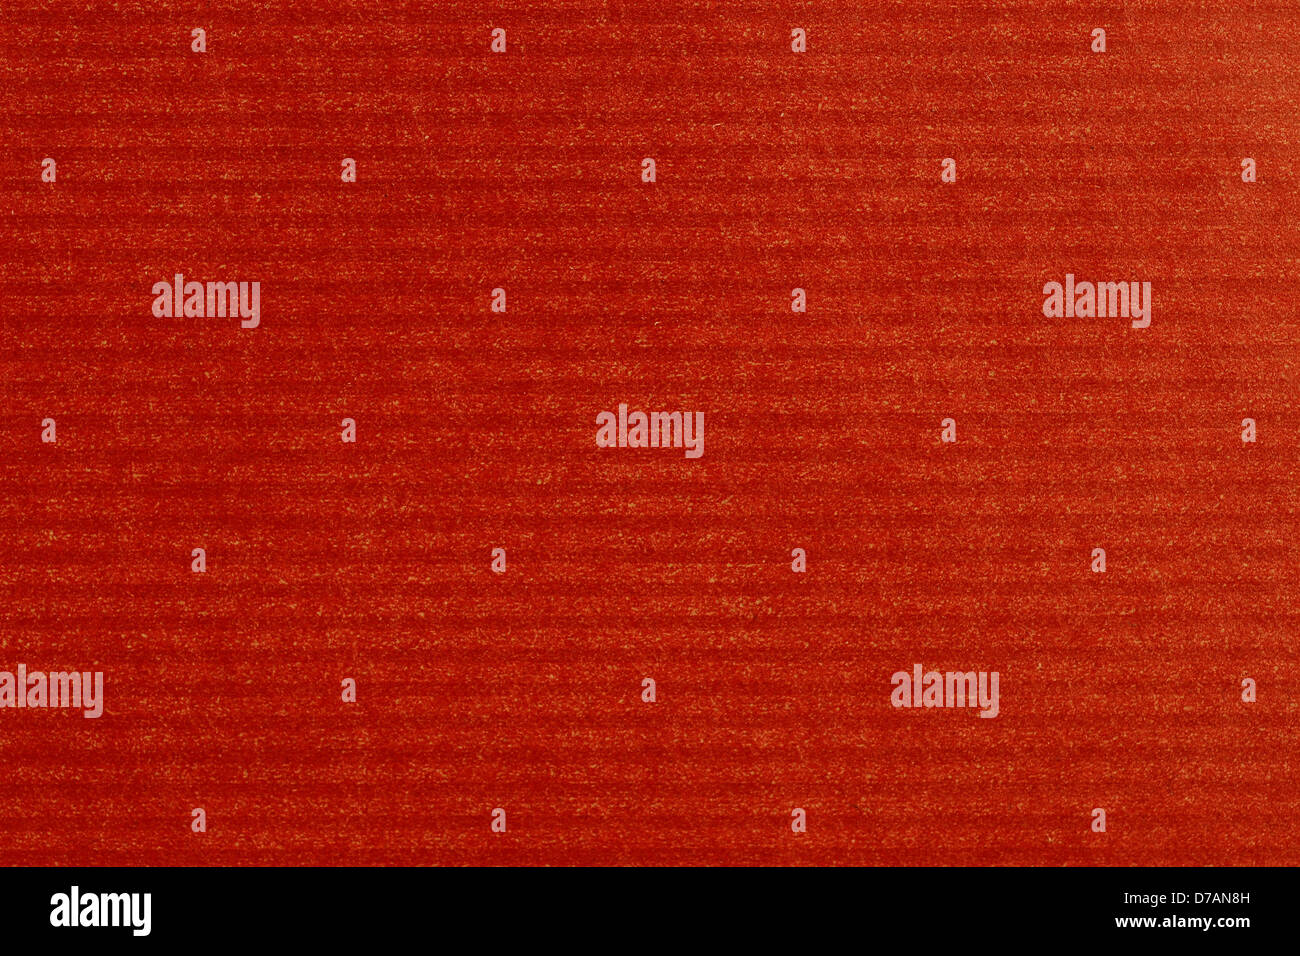 Lined red wrapping gift paper wrap. Stock Photo